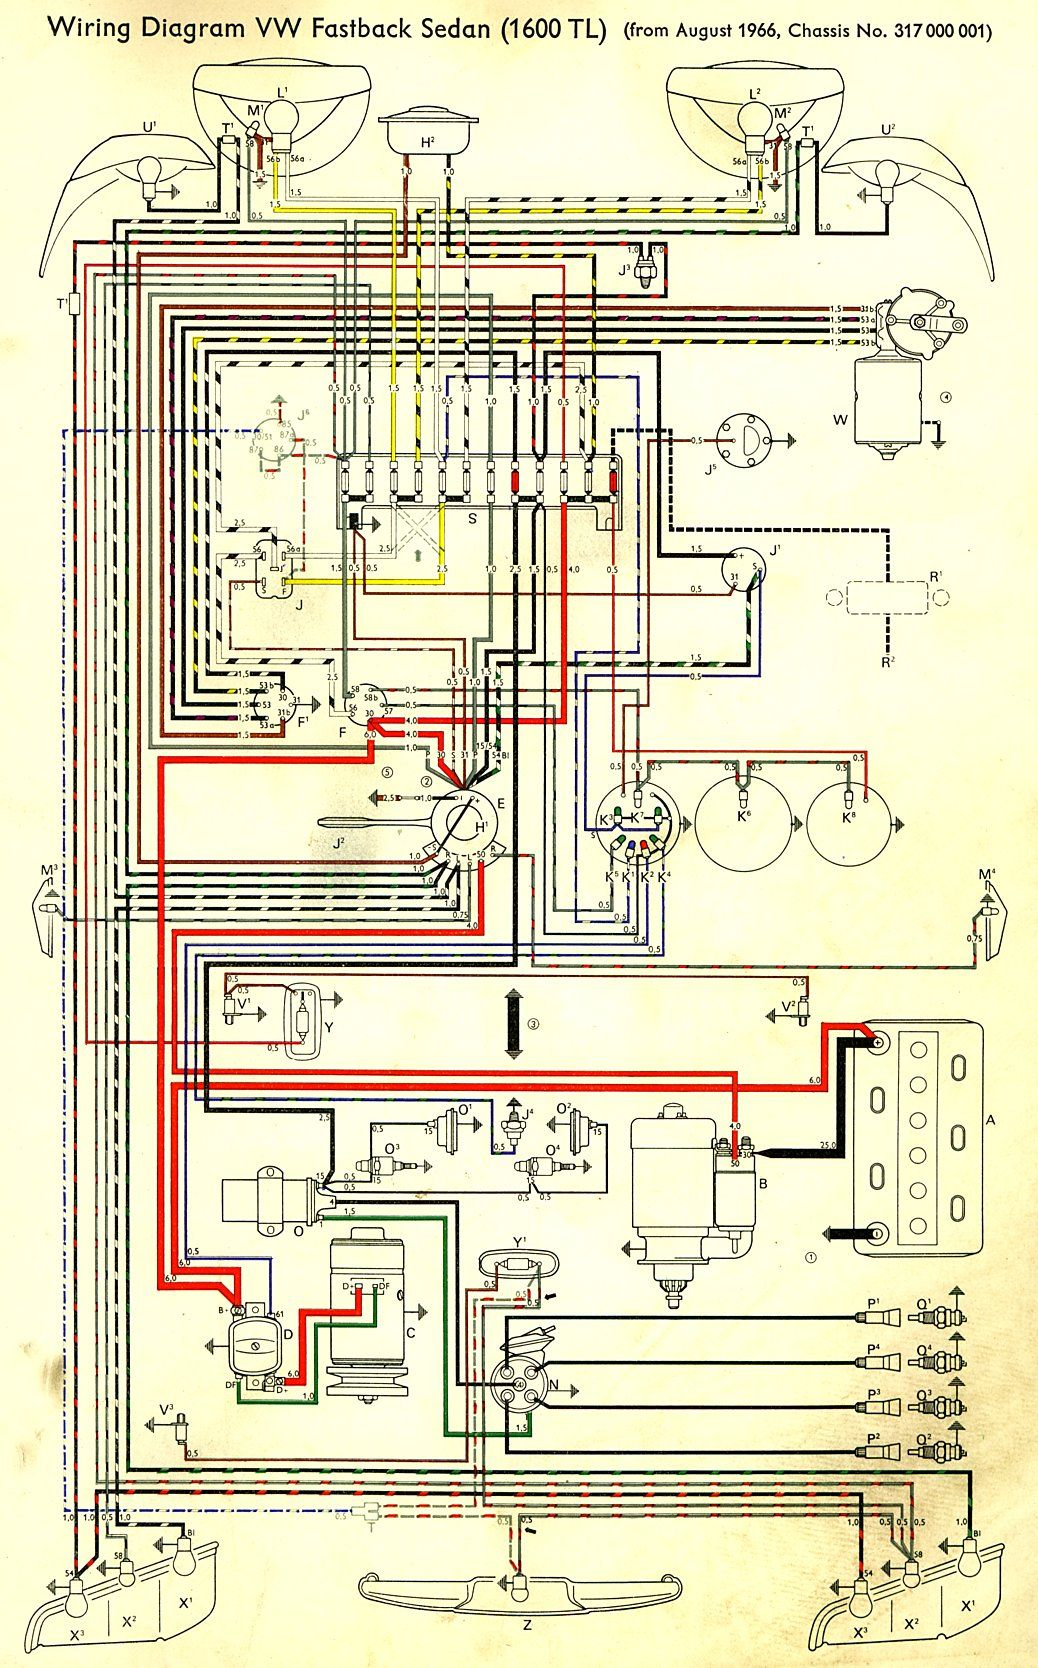 hight resolution of wiring diagram type 928 model 84 page 1 wiring 97 front engine electronic ingnition lh injection cl concealed headlightlampassemrly